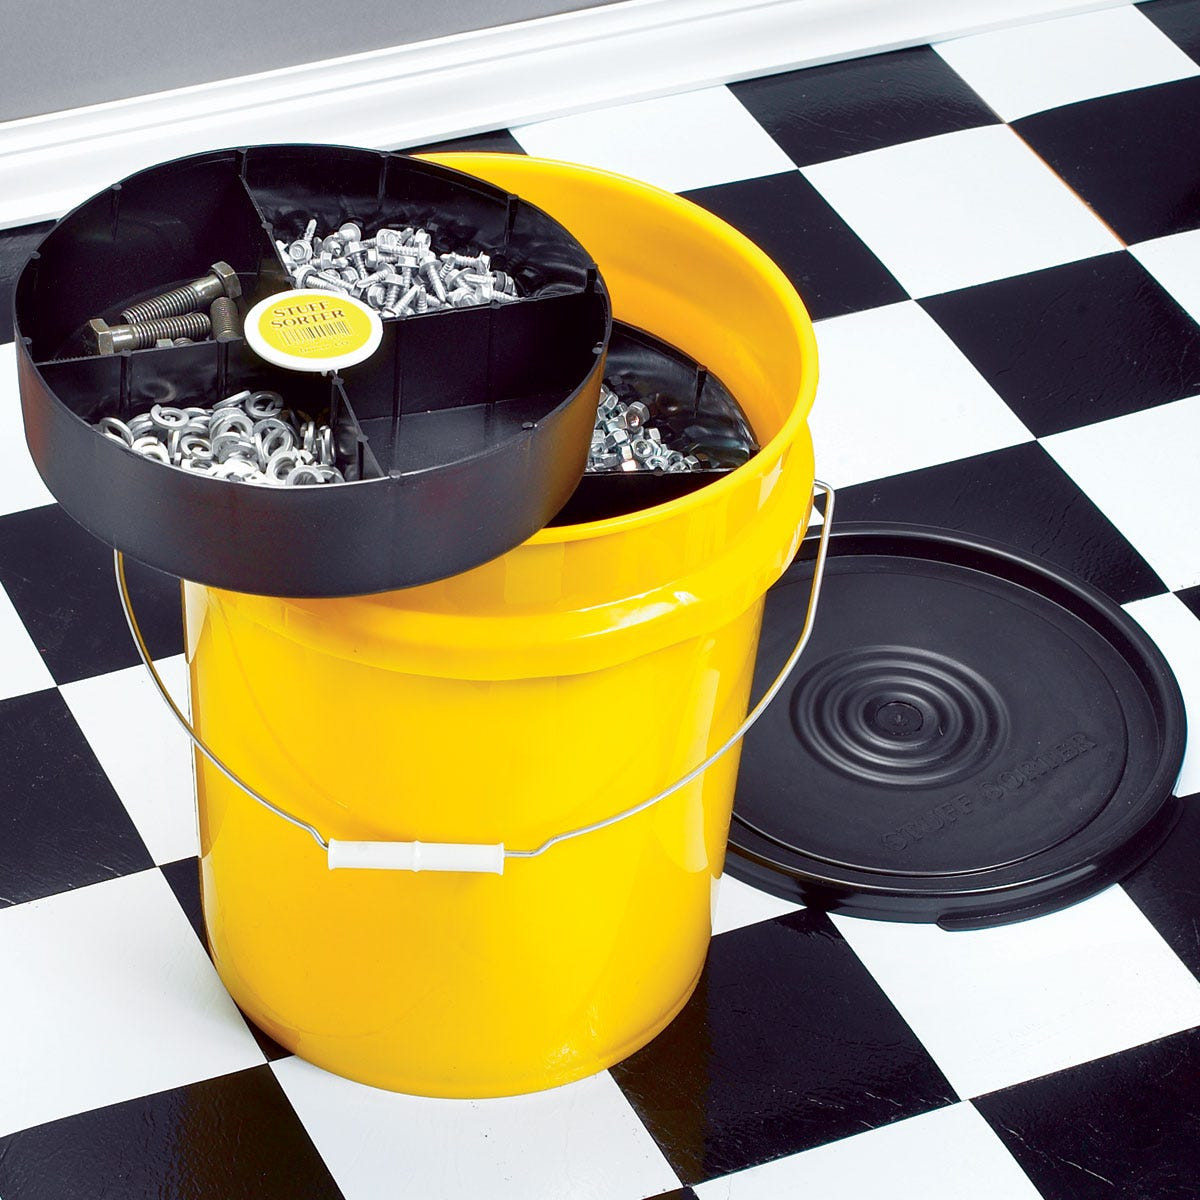 drop-in-the-bucket storage system - from sporty's tool shop